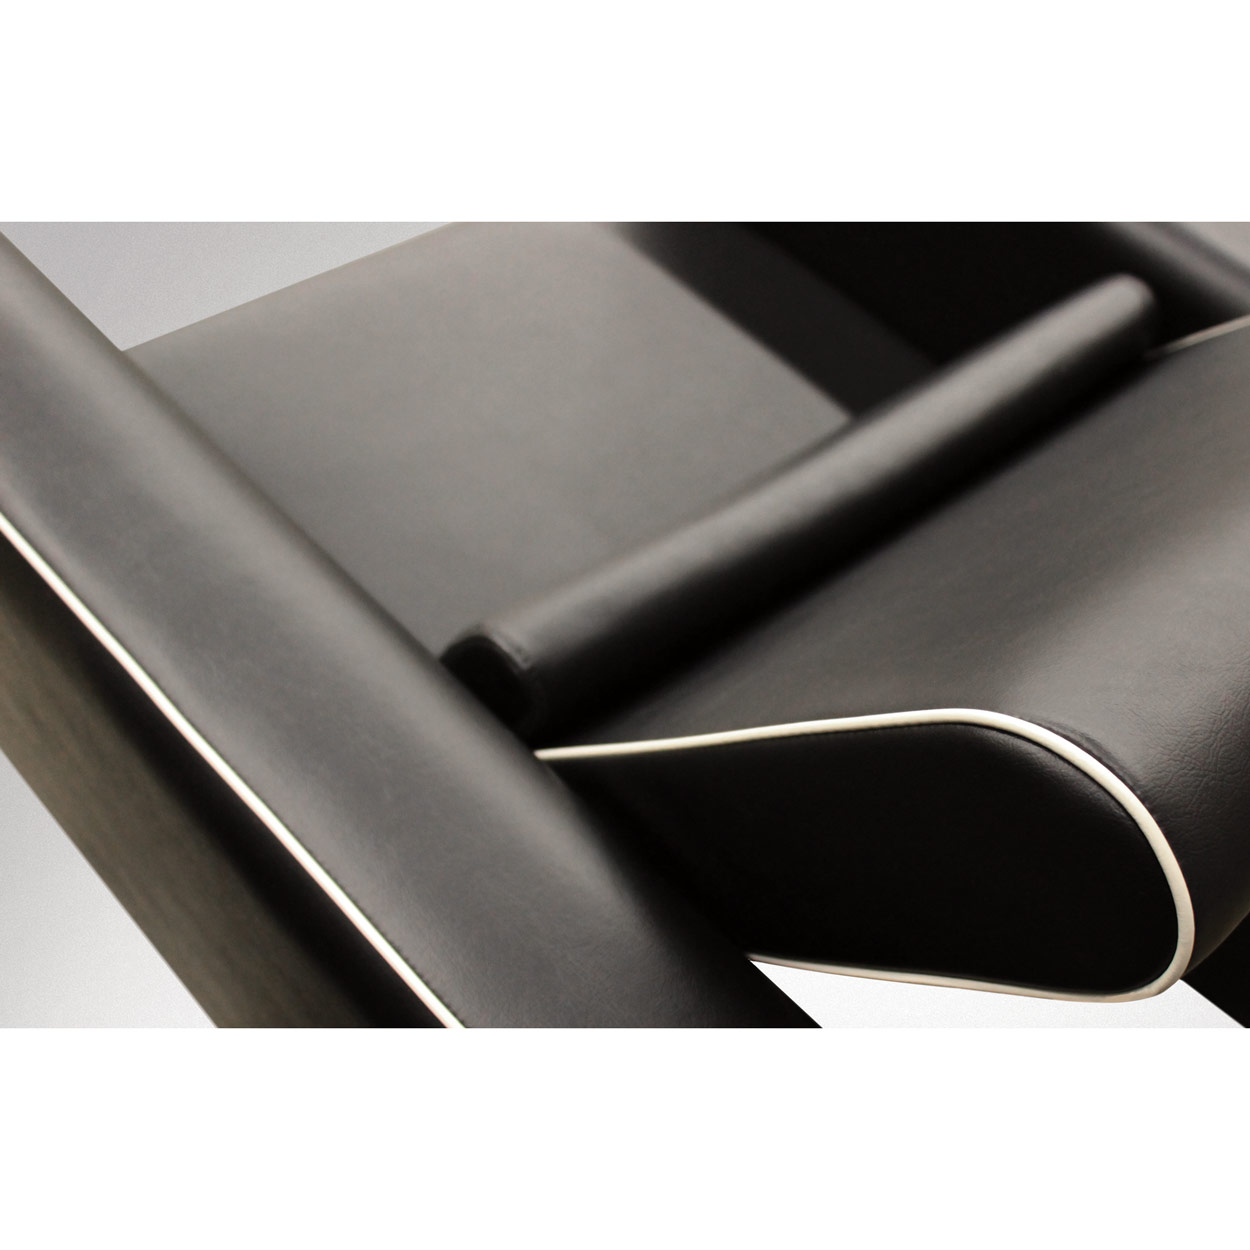 Takara Belmont Lusso Styling Chair alternative product image 2